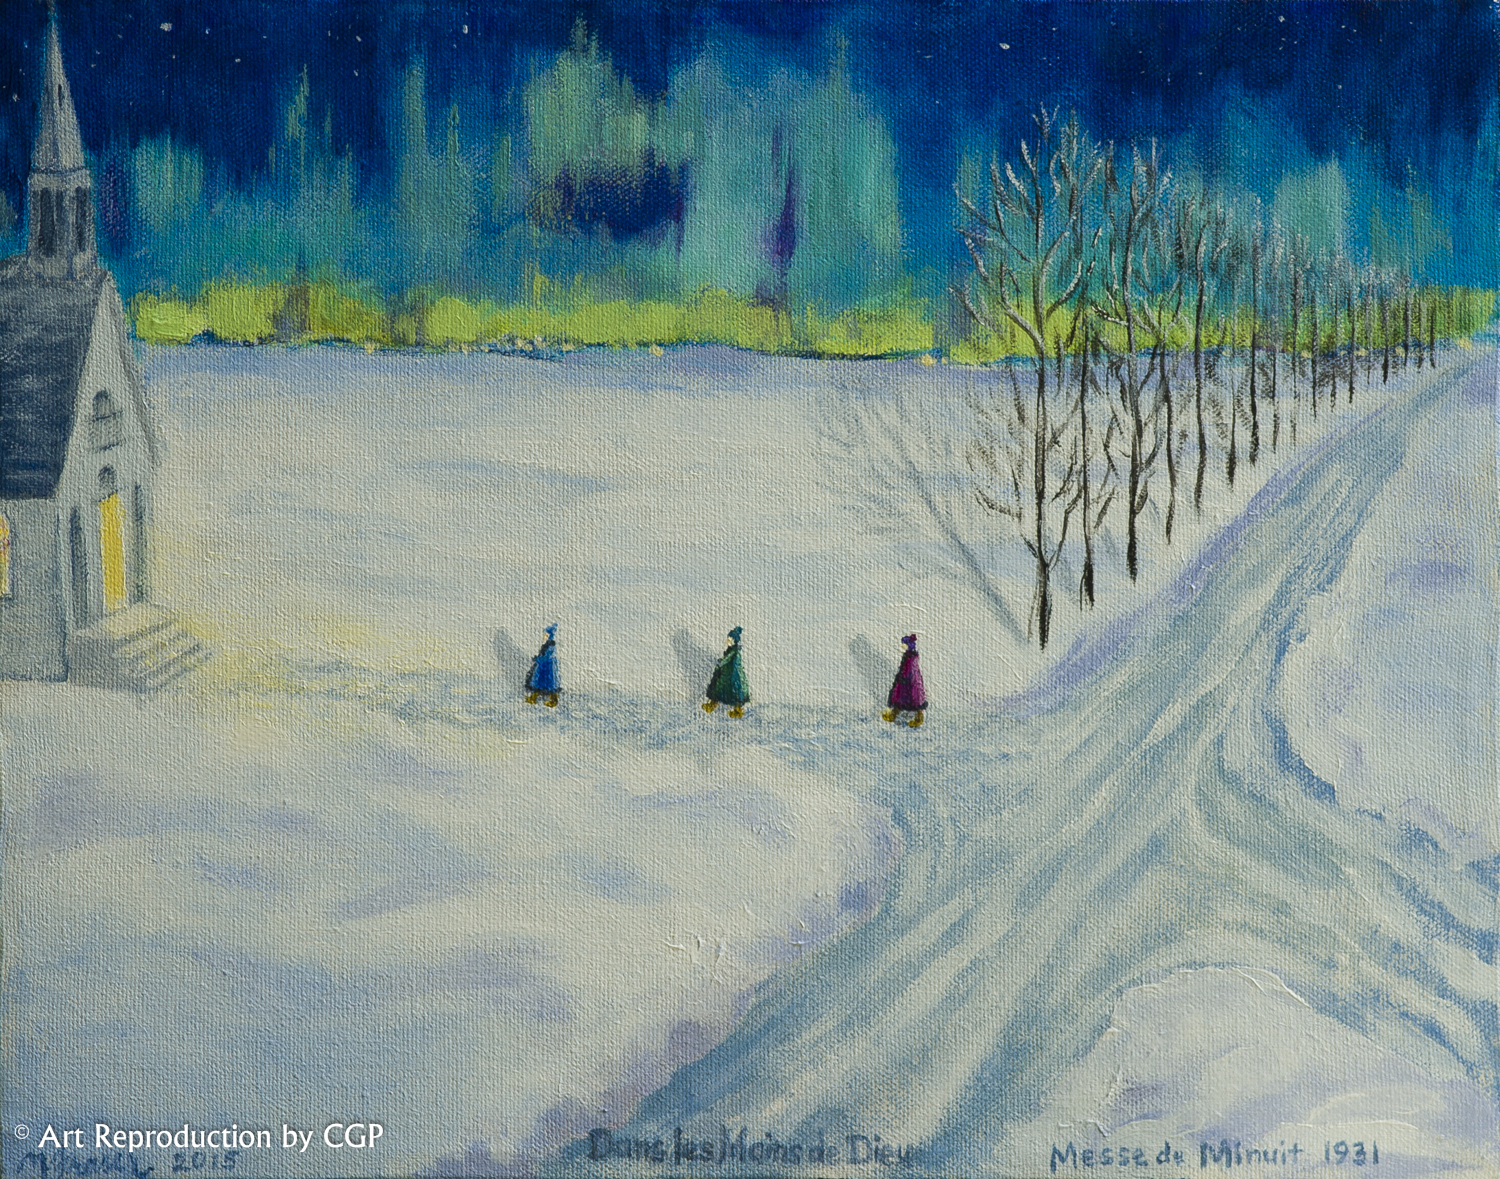 Artist: Nicole Fraser Armstrong Title: Dans les Mains de Dieu Medium: Acrylic on canvas. This image evokes a strong emotion. It reminds me of a typical cold winter Quebec scene but in reality is from Manitoba. It's a familiar scene that gives me a sense of peace. Plus, I love the different shades of blues.